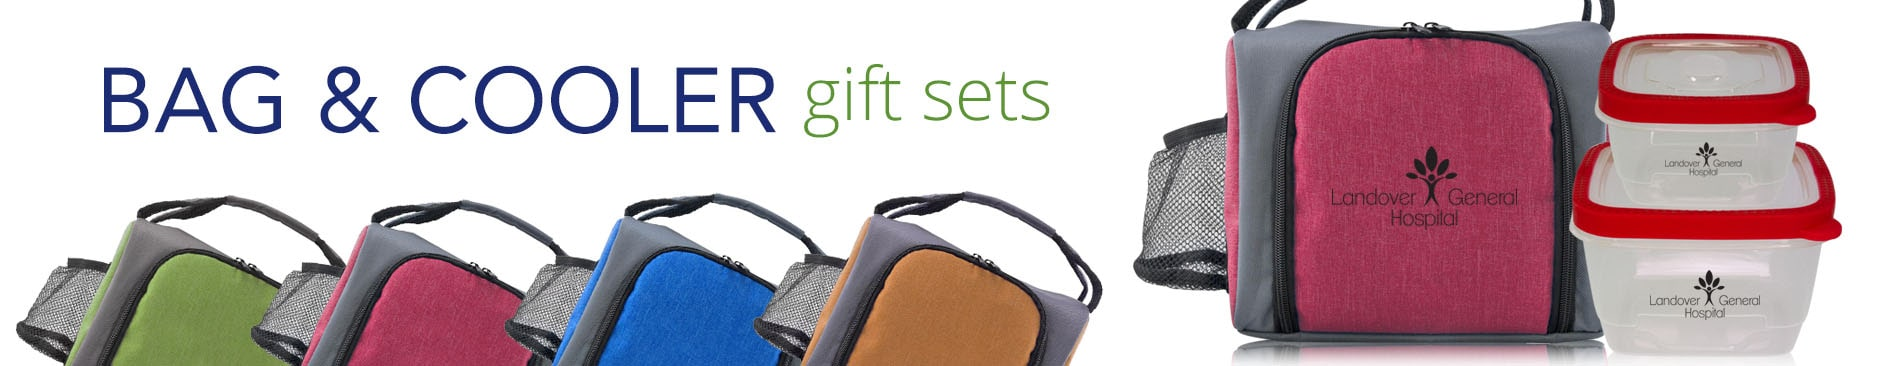 Bag & Coolers Gift Sets